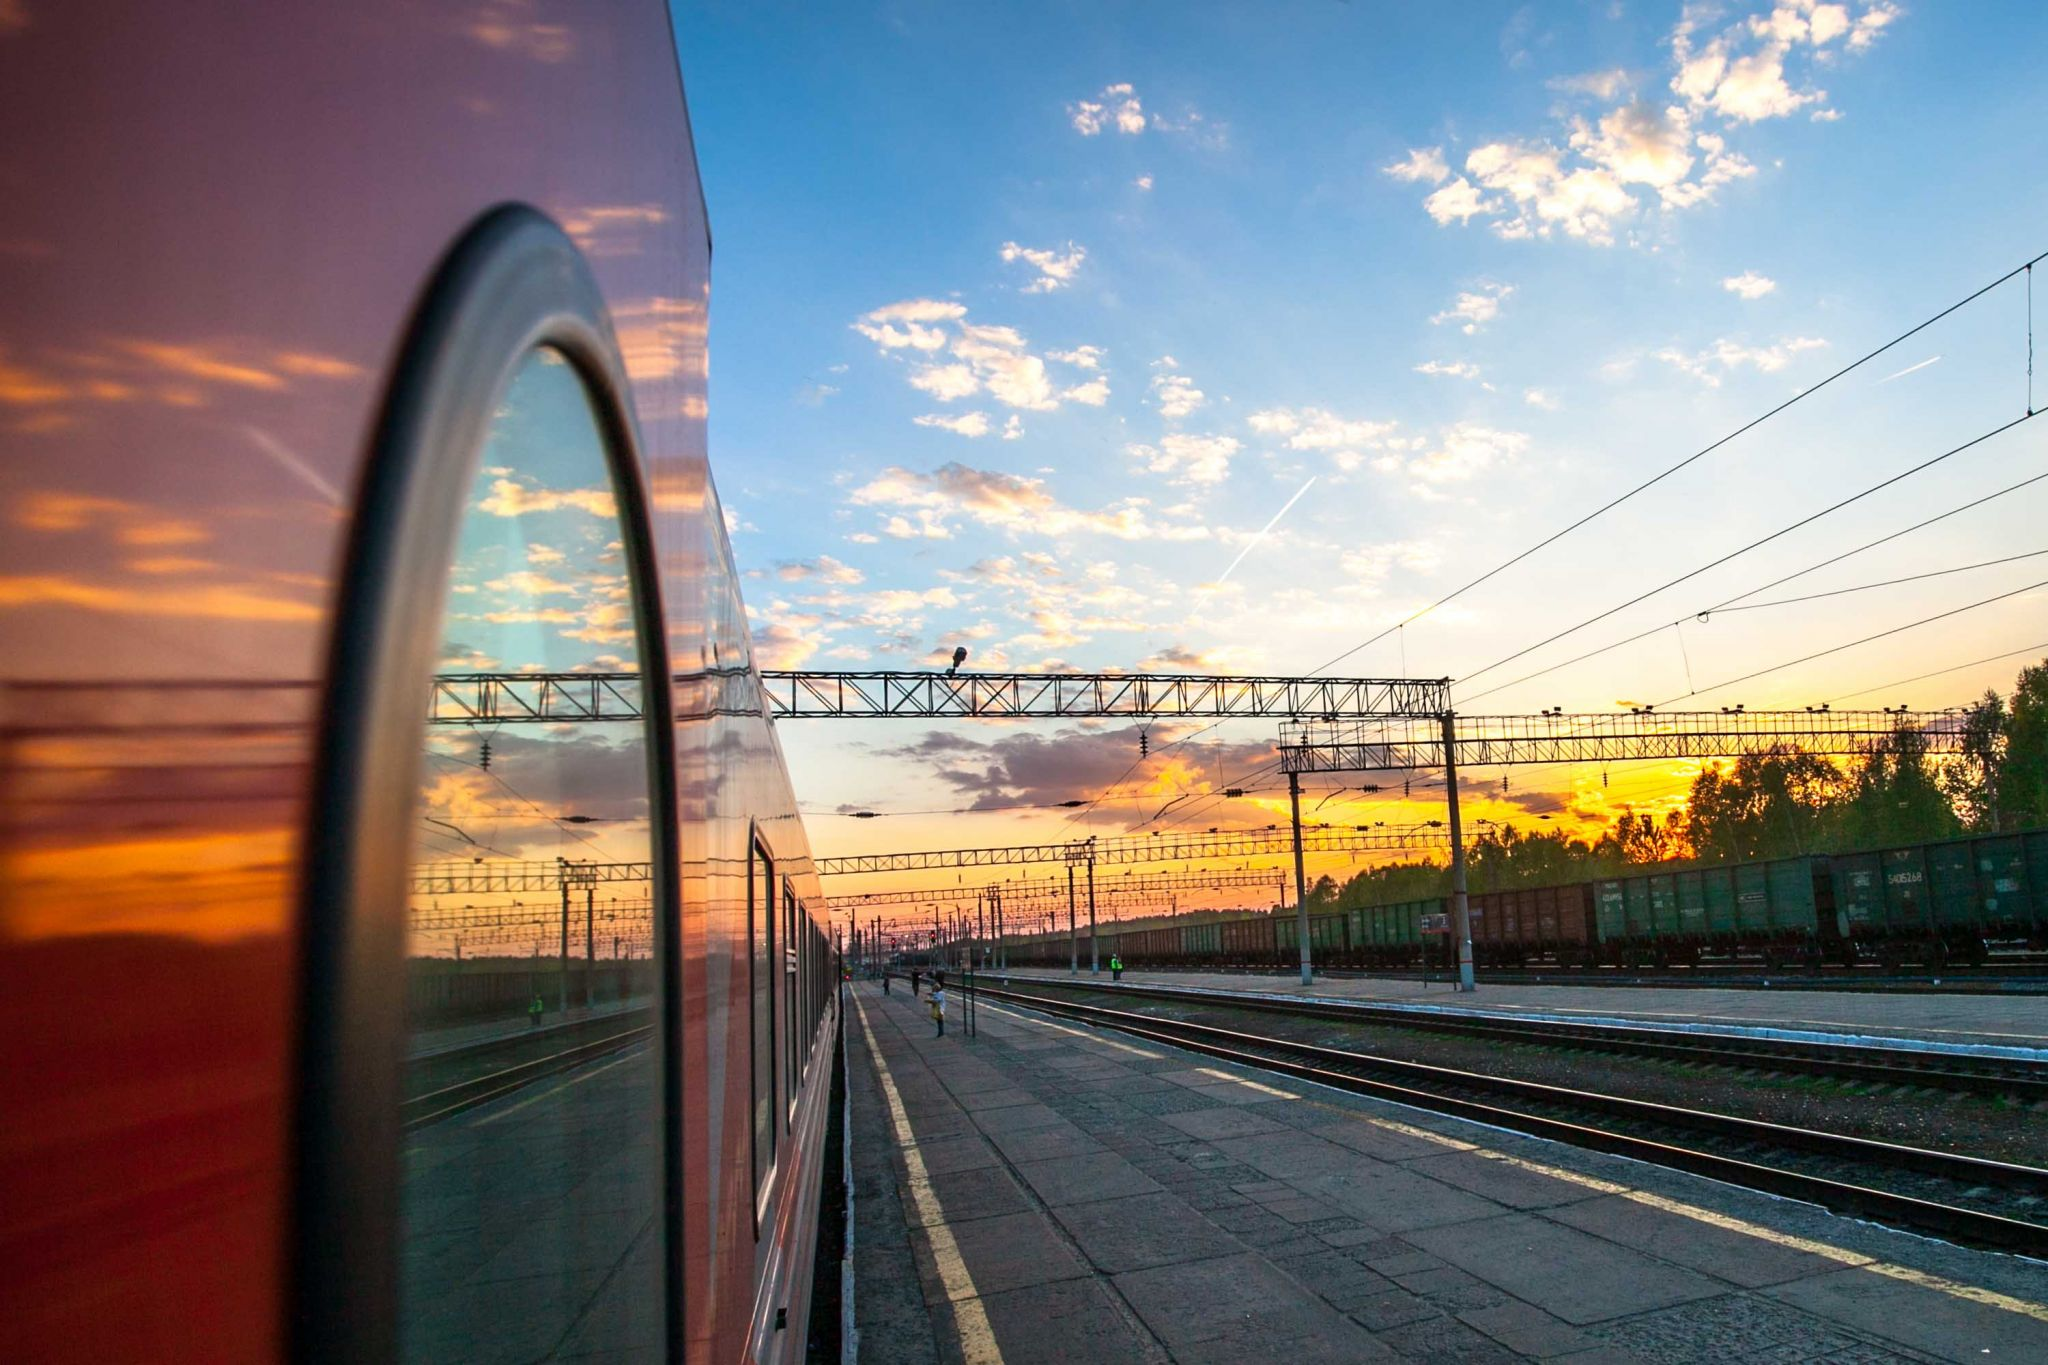 Sunrise on the Trans Siberian Railway Yekaterinburg, Russian Federation